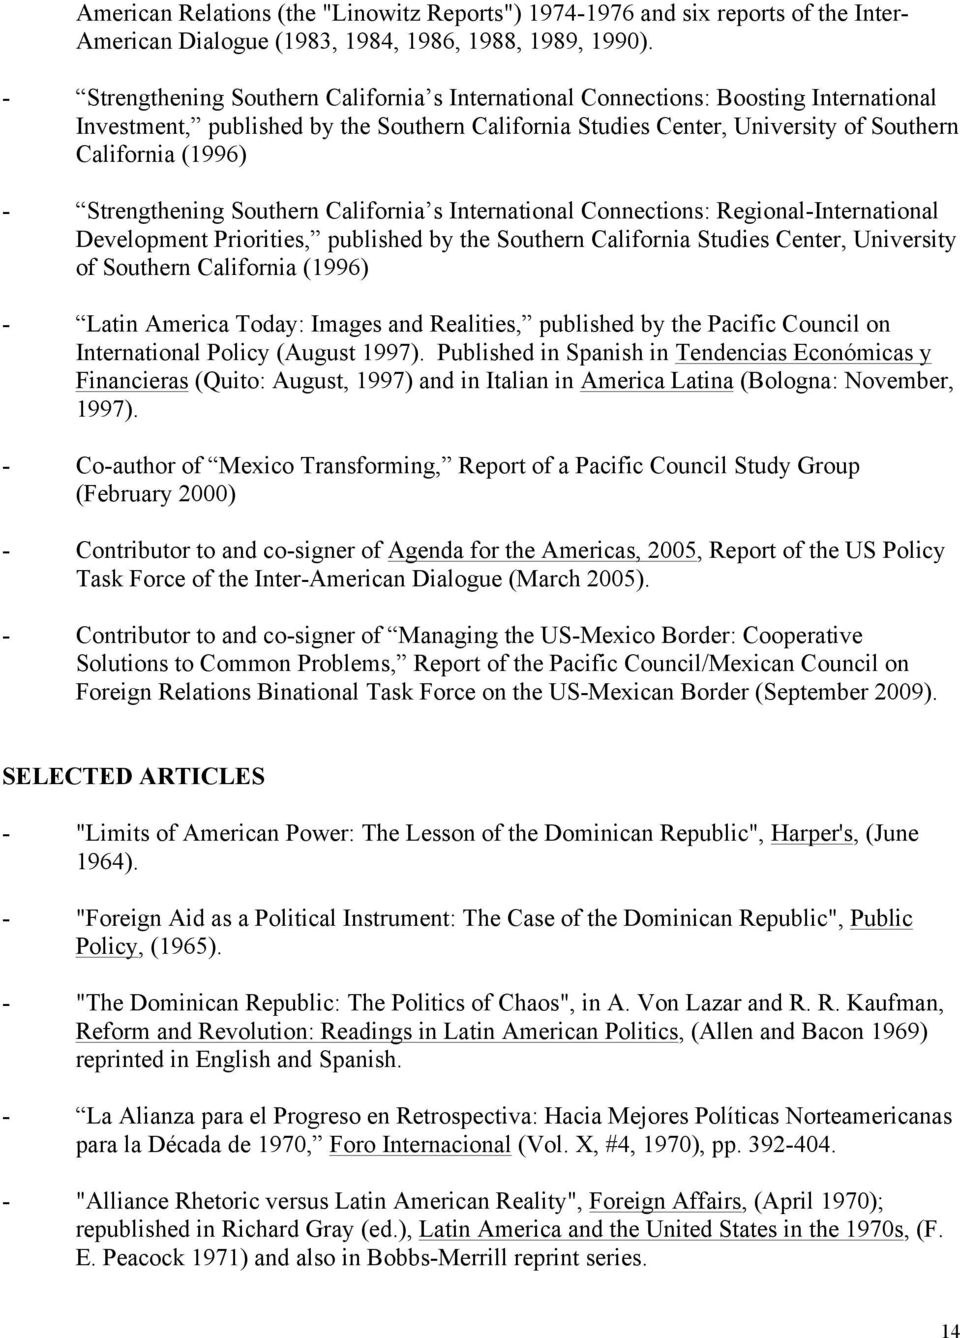 Strengthening Southern California s International Connections: Regional-International Development Priorities, published by the Southern California Studies Center, University of Southern California